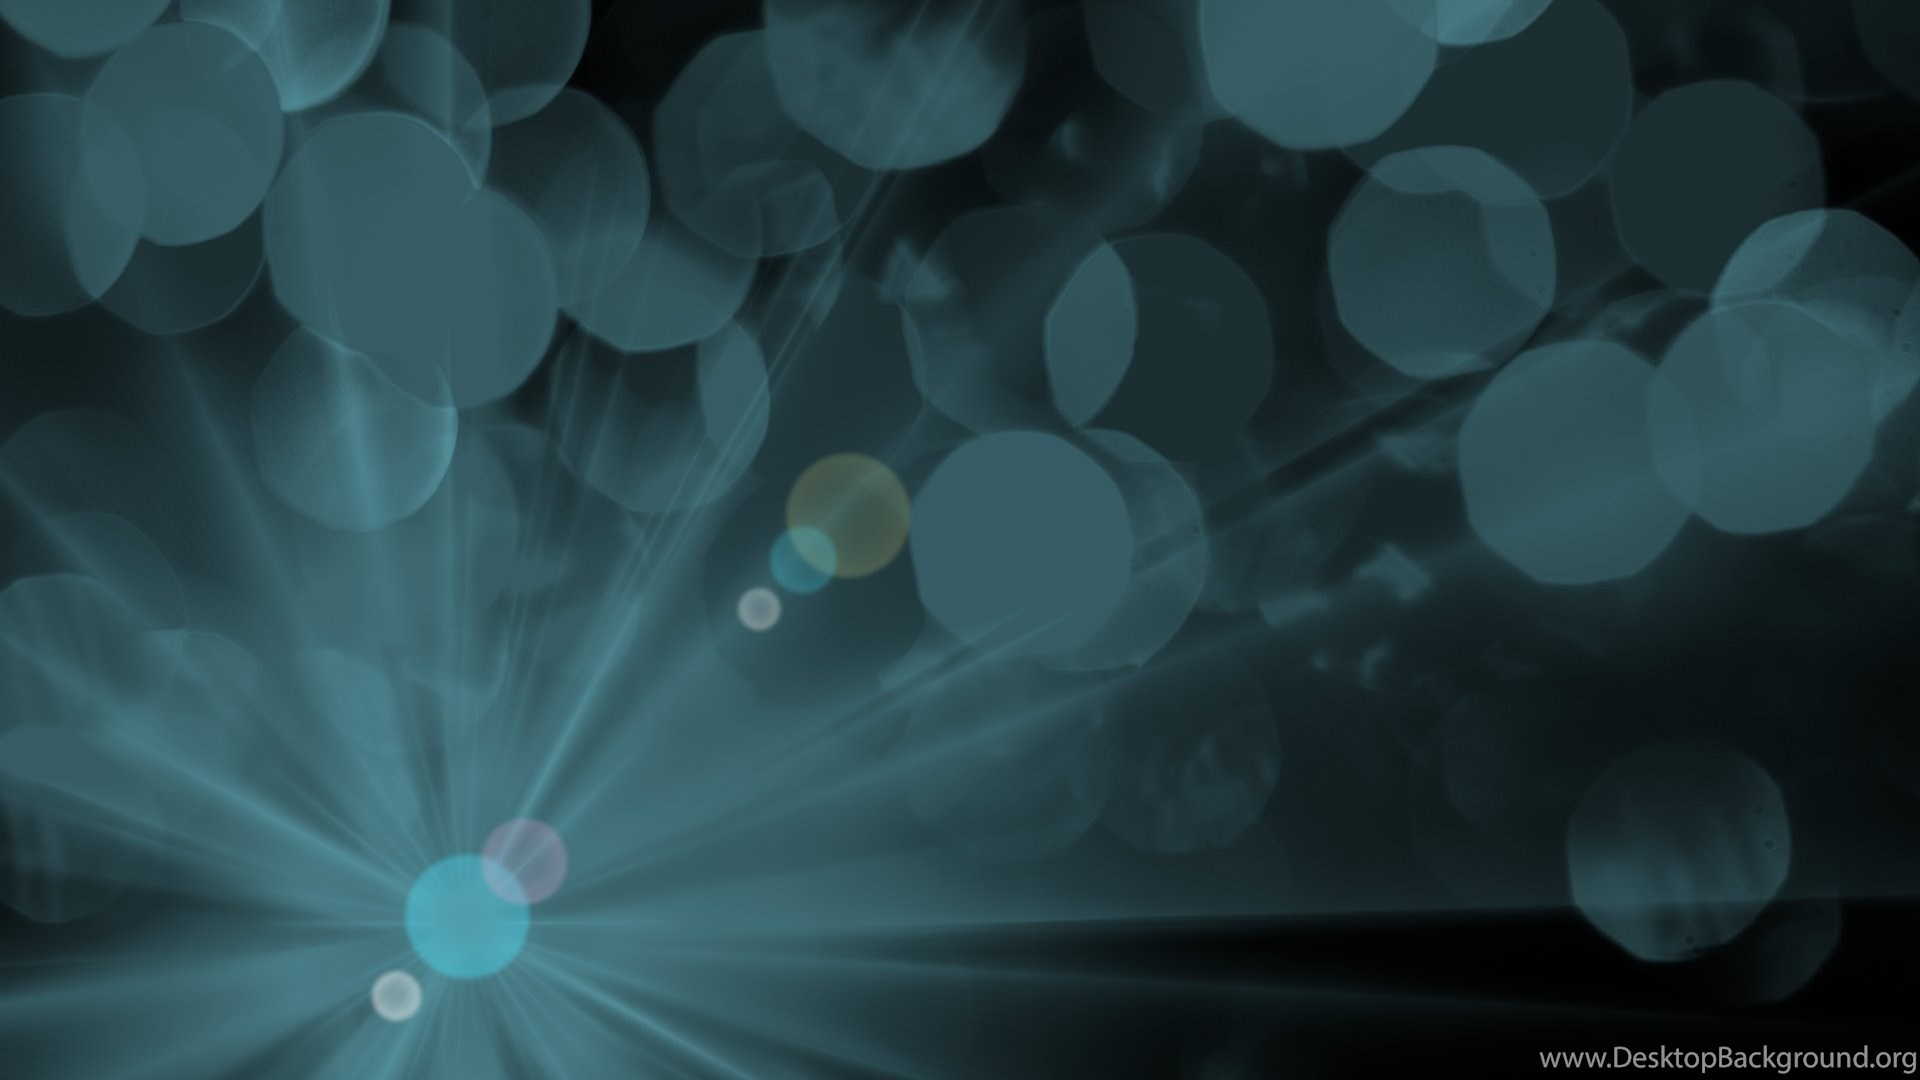 Hd abstract wallpaper desktop images mac background images popular voltagebd Choice Image